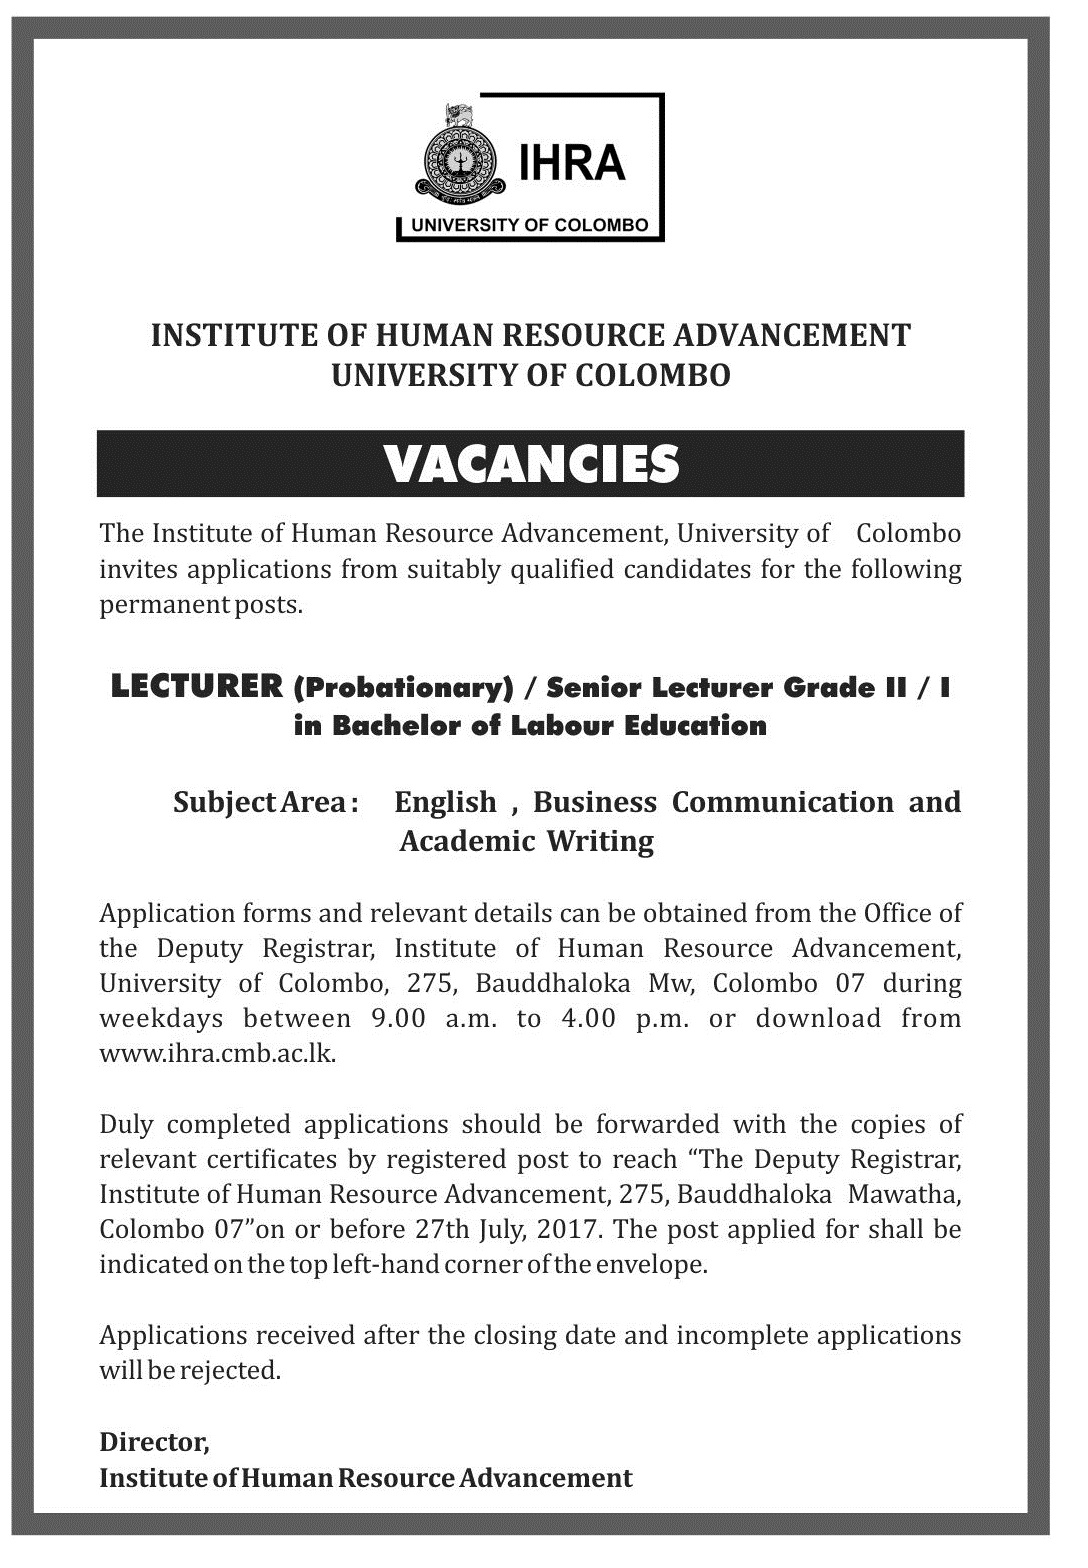 LECTURER (Probationary) / Senior Lecturer Grade II / I in Bachelor of Labour Education